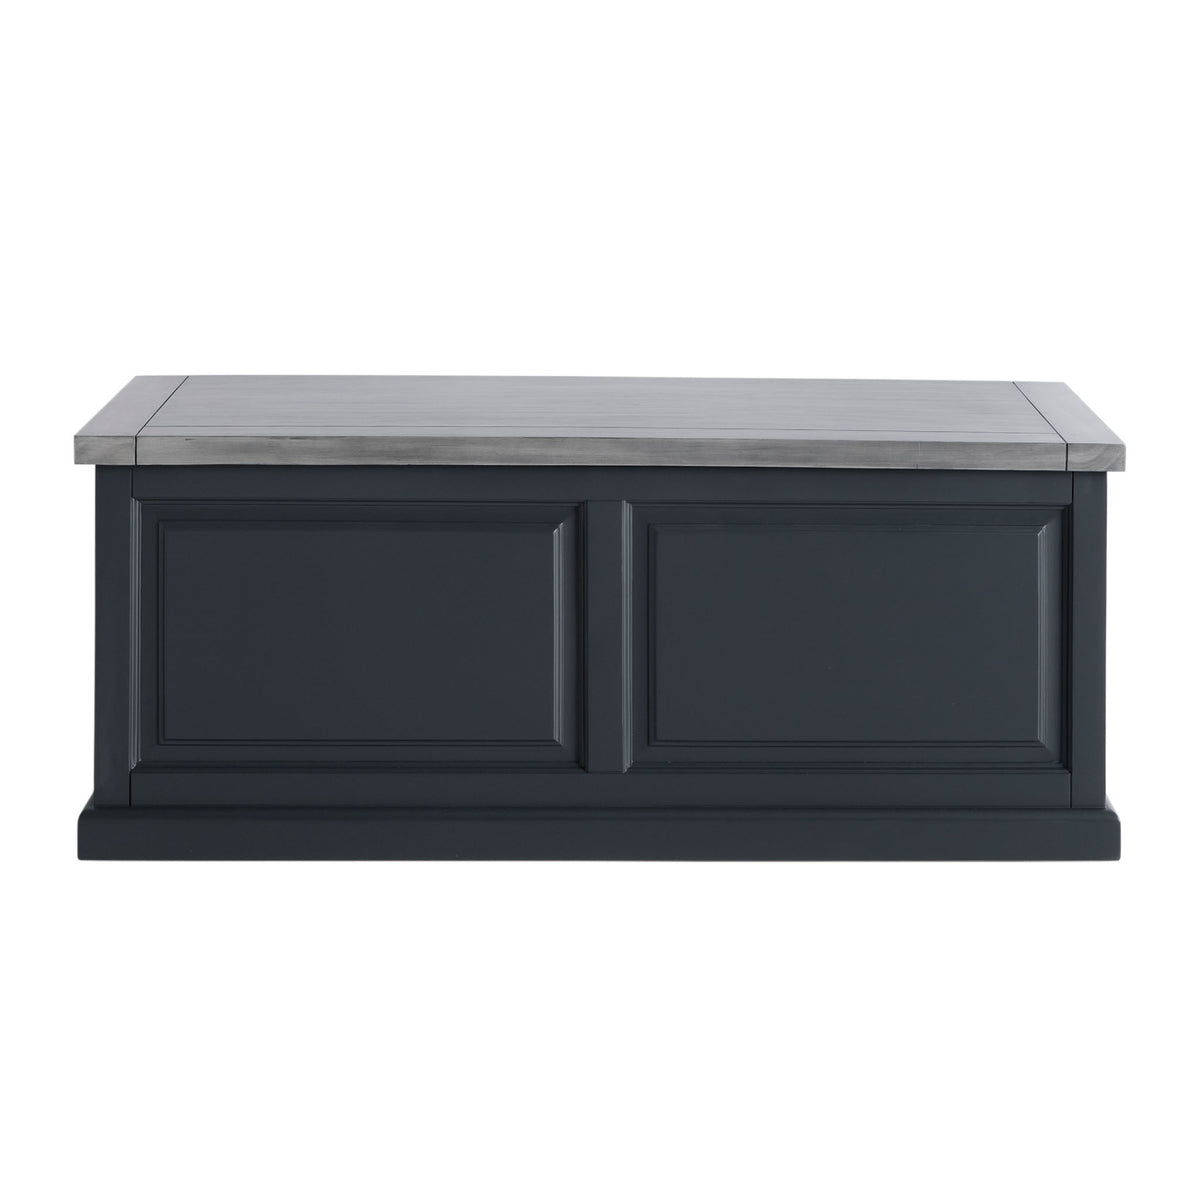 Bristol Charcoal Blanket Box